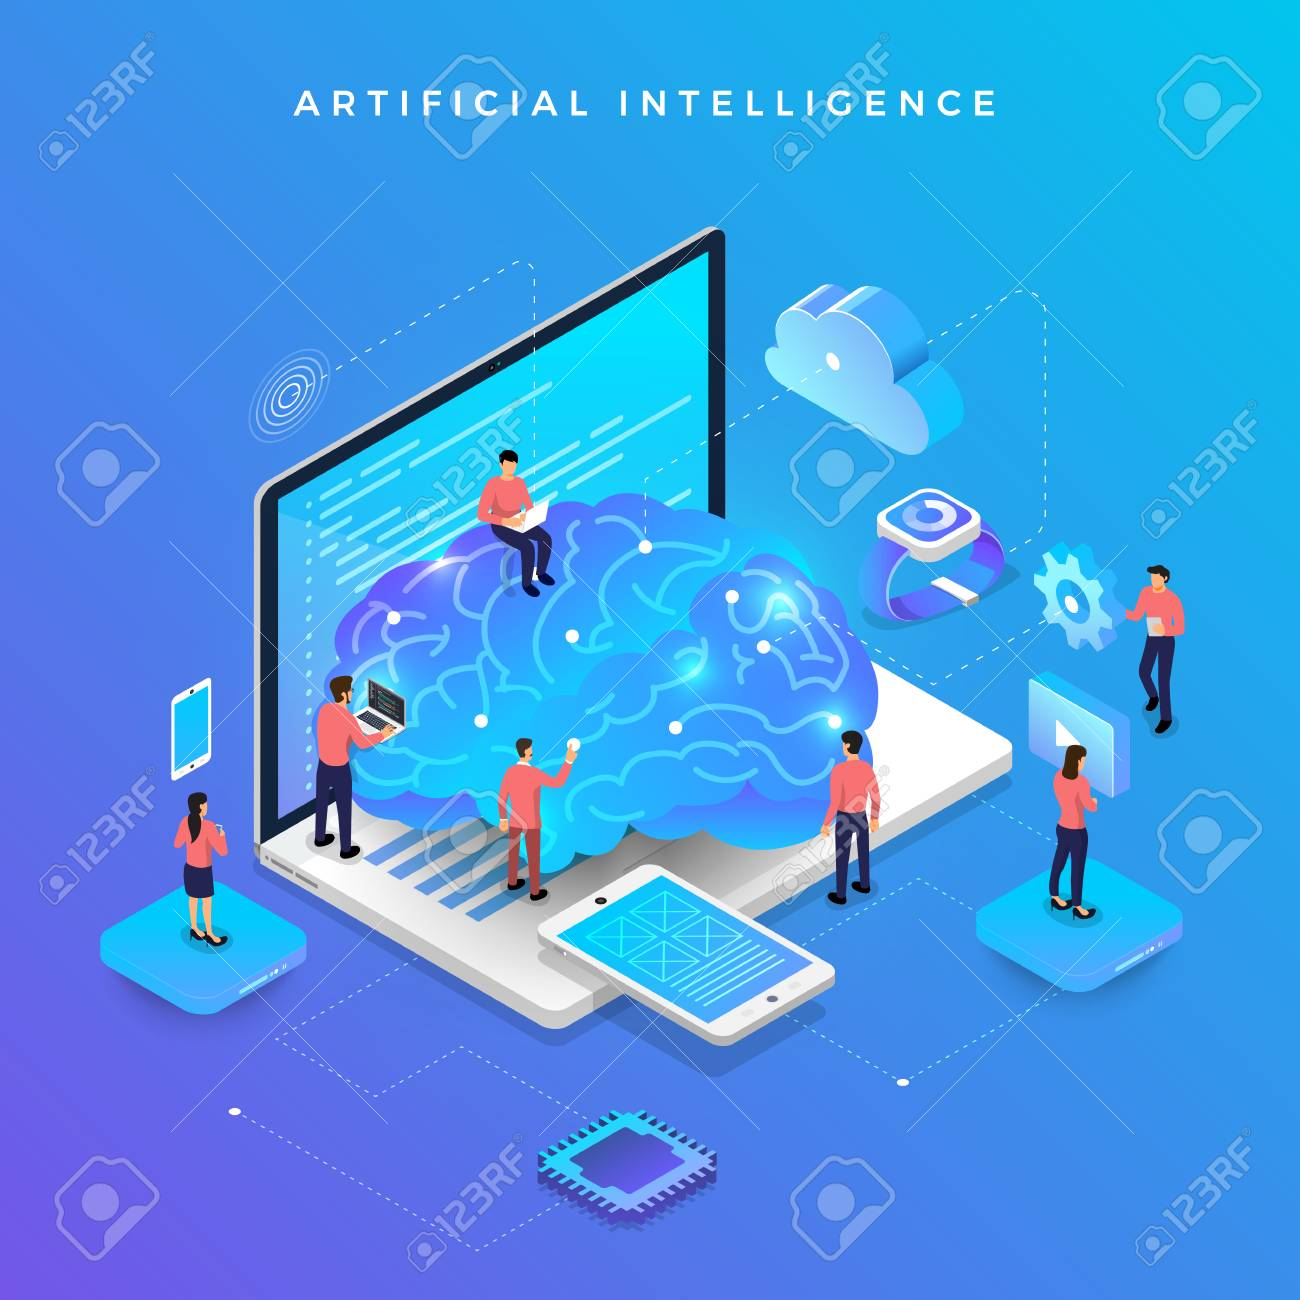 Illustrations concept artificial intelligence AI. Technology working with smart brain computer and machine connecting device. Isometric vector illustrate. - 107941754